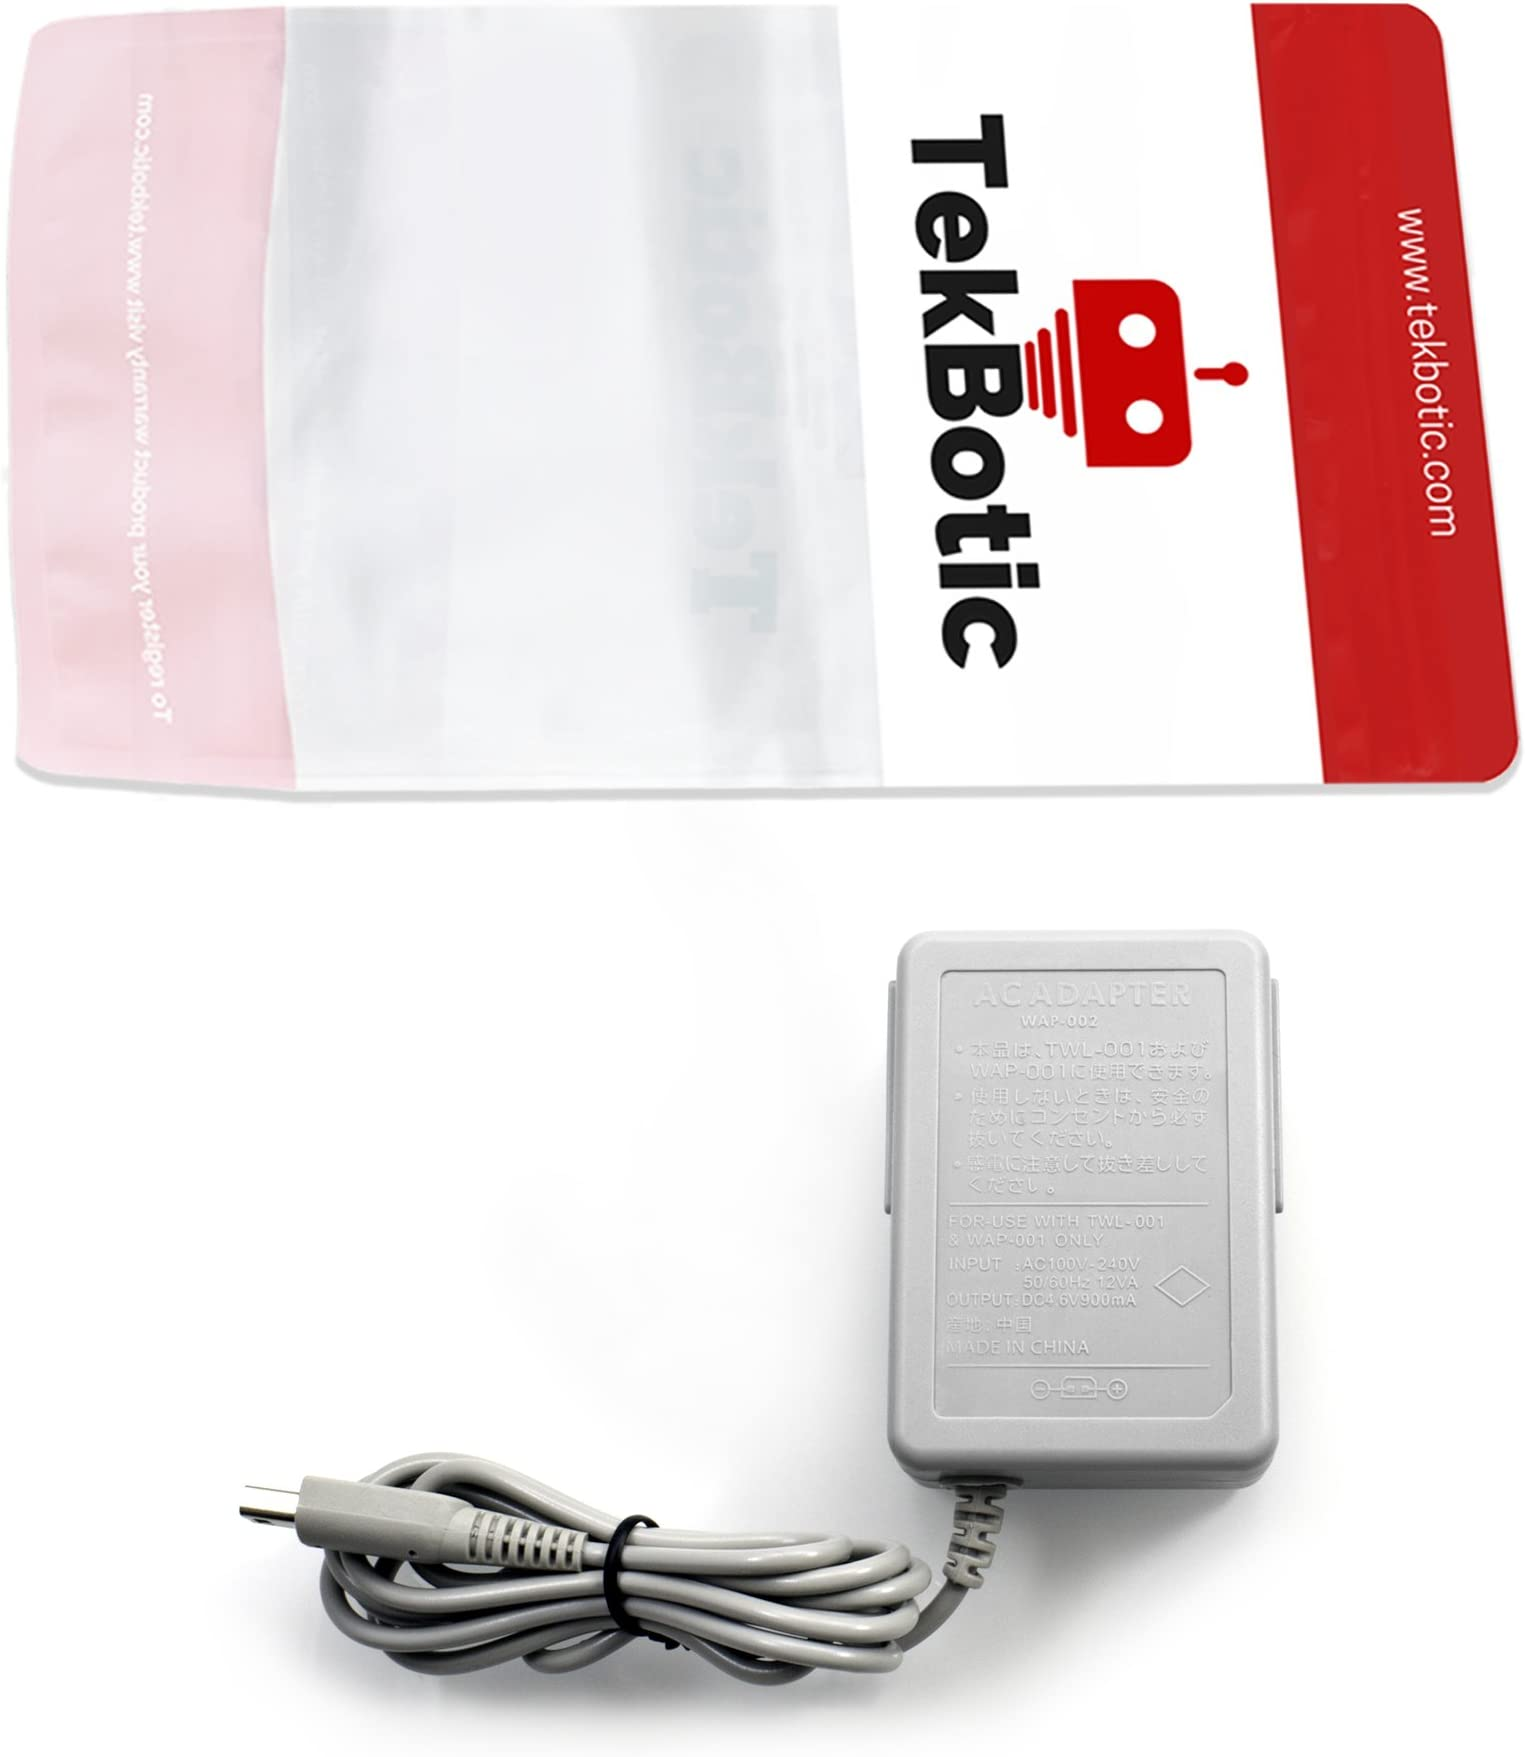 Amazon.com: tekbotic Play & Charge AC Adapter + Cable USB ...